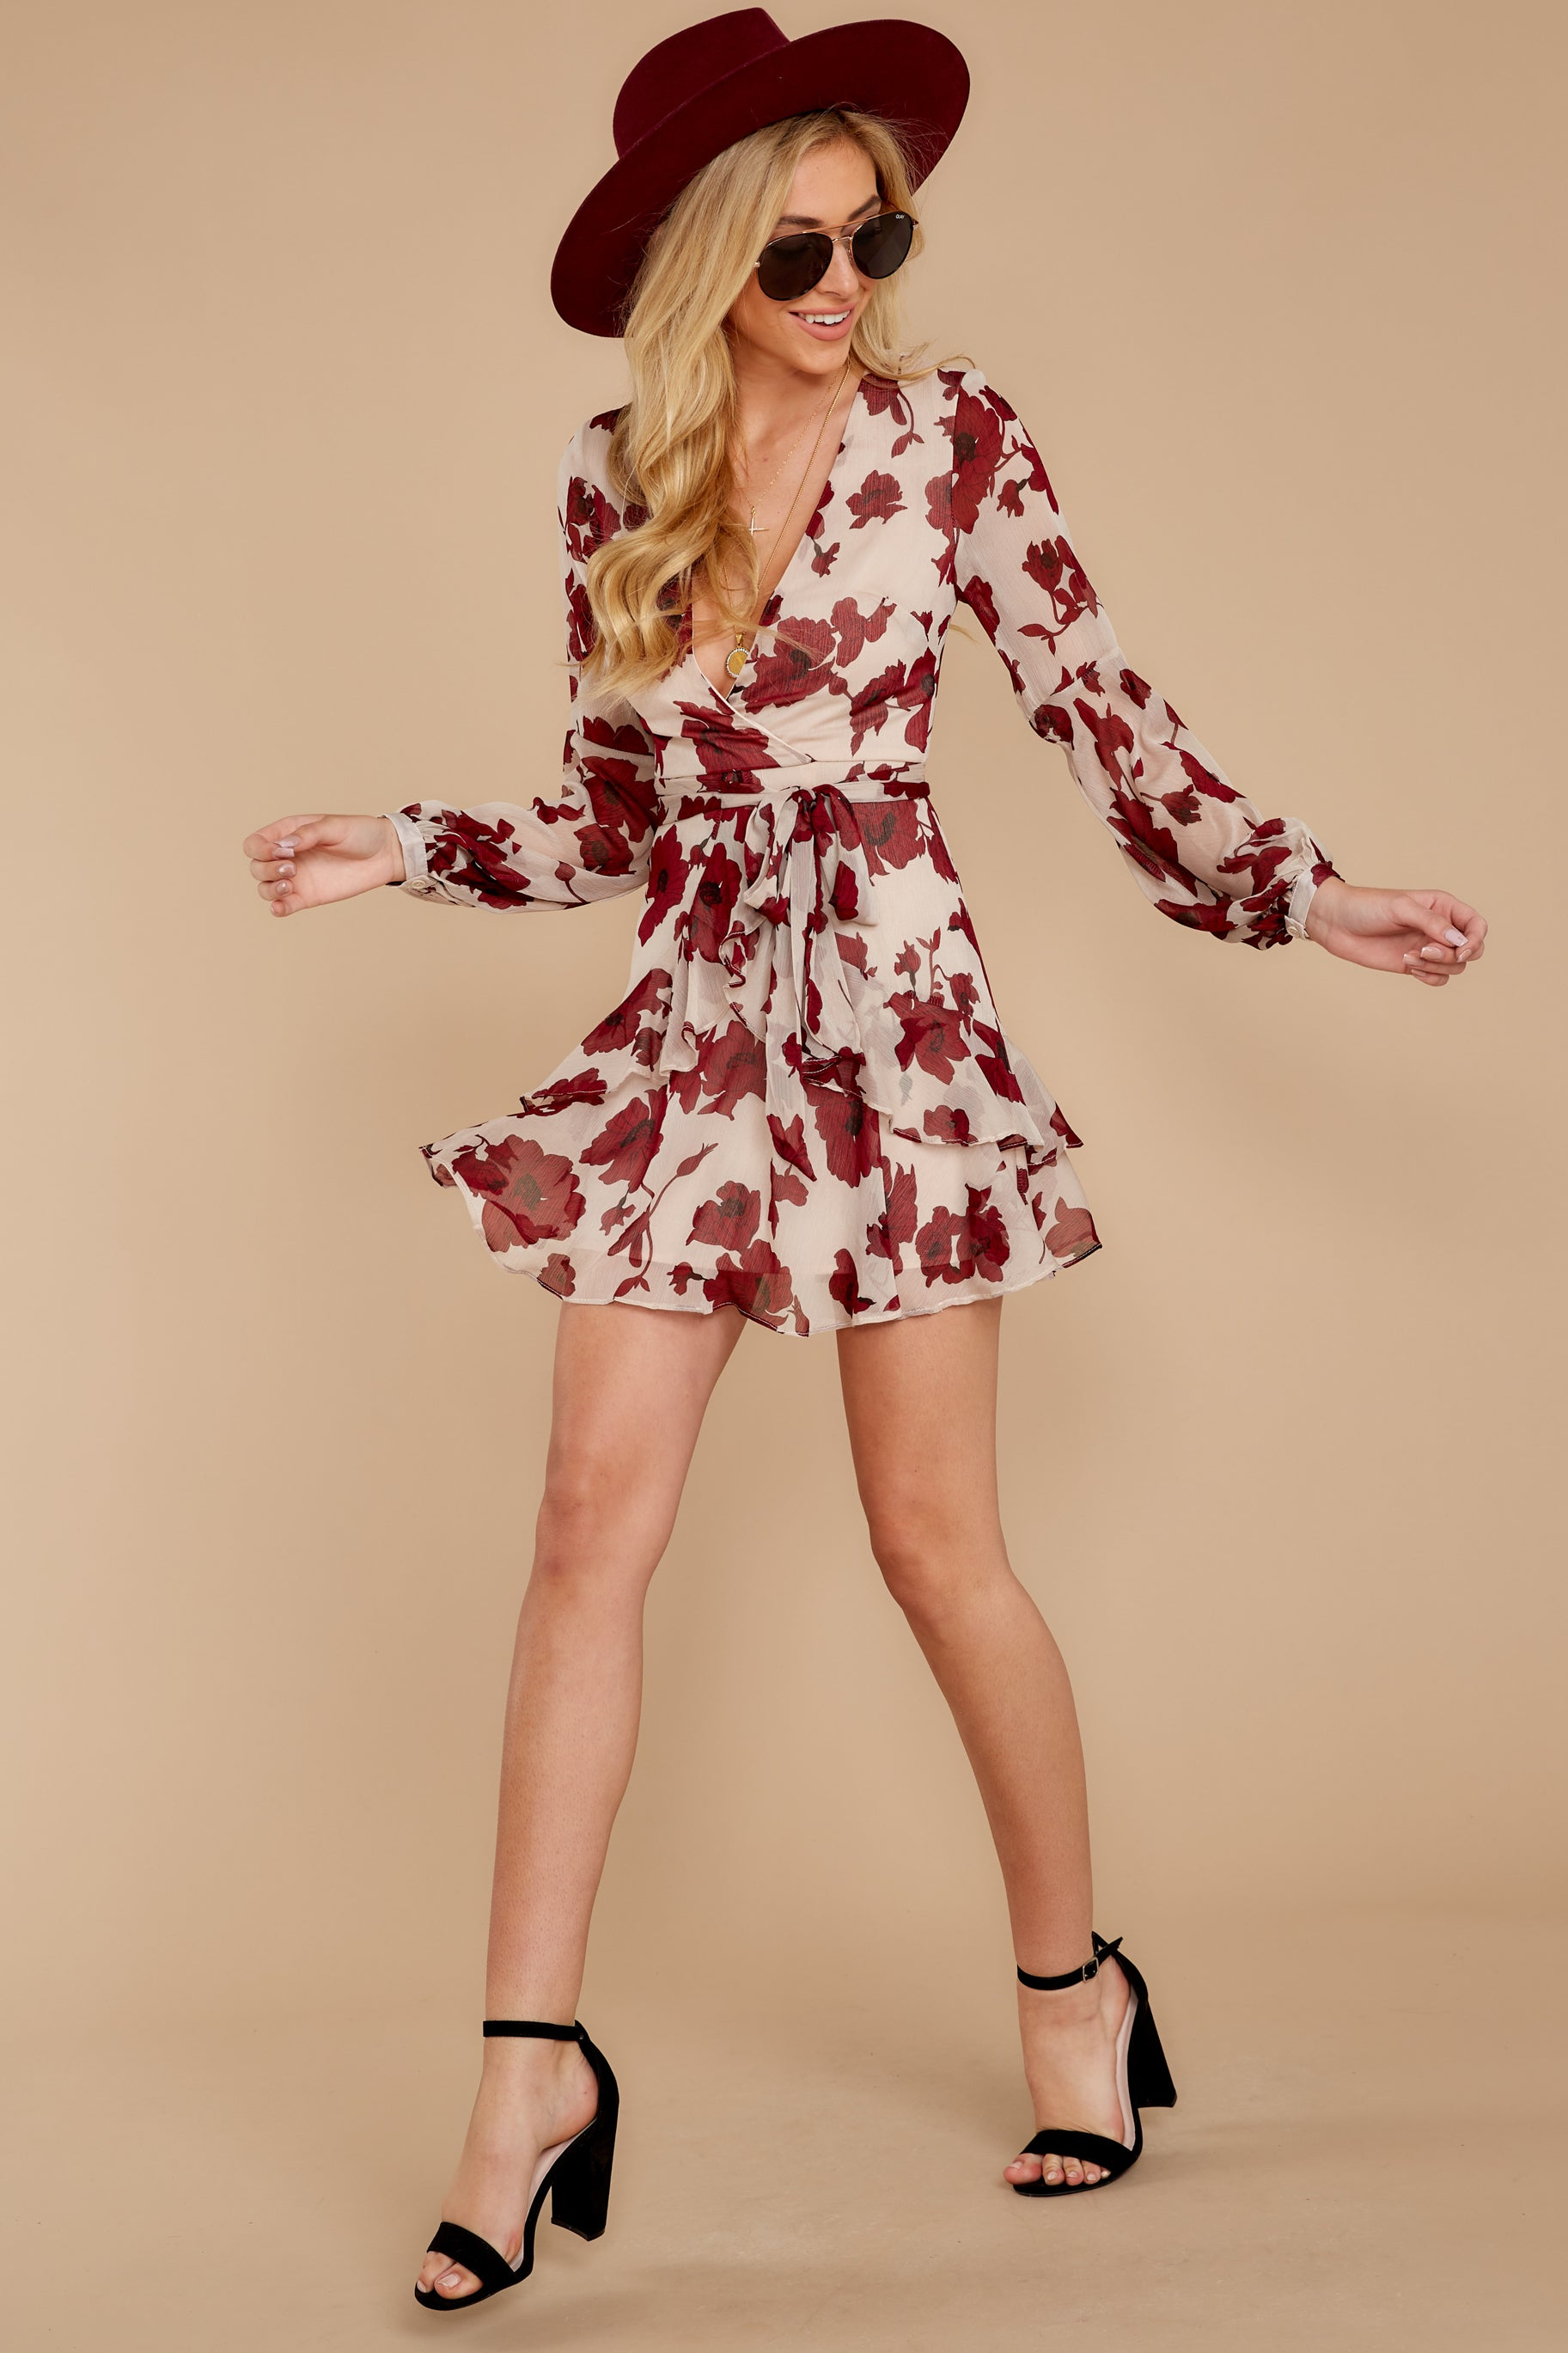 2 Simply Yours Burgundy Floral Print Dress at reddressboutique.com